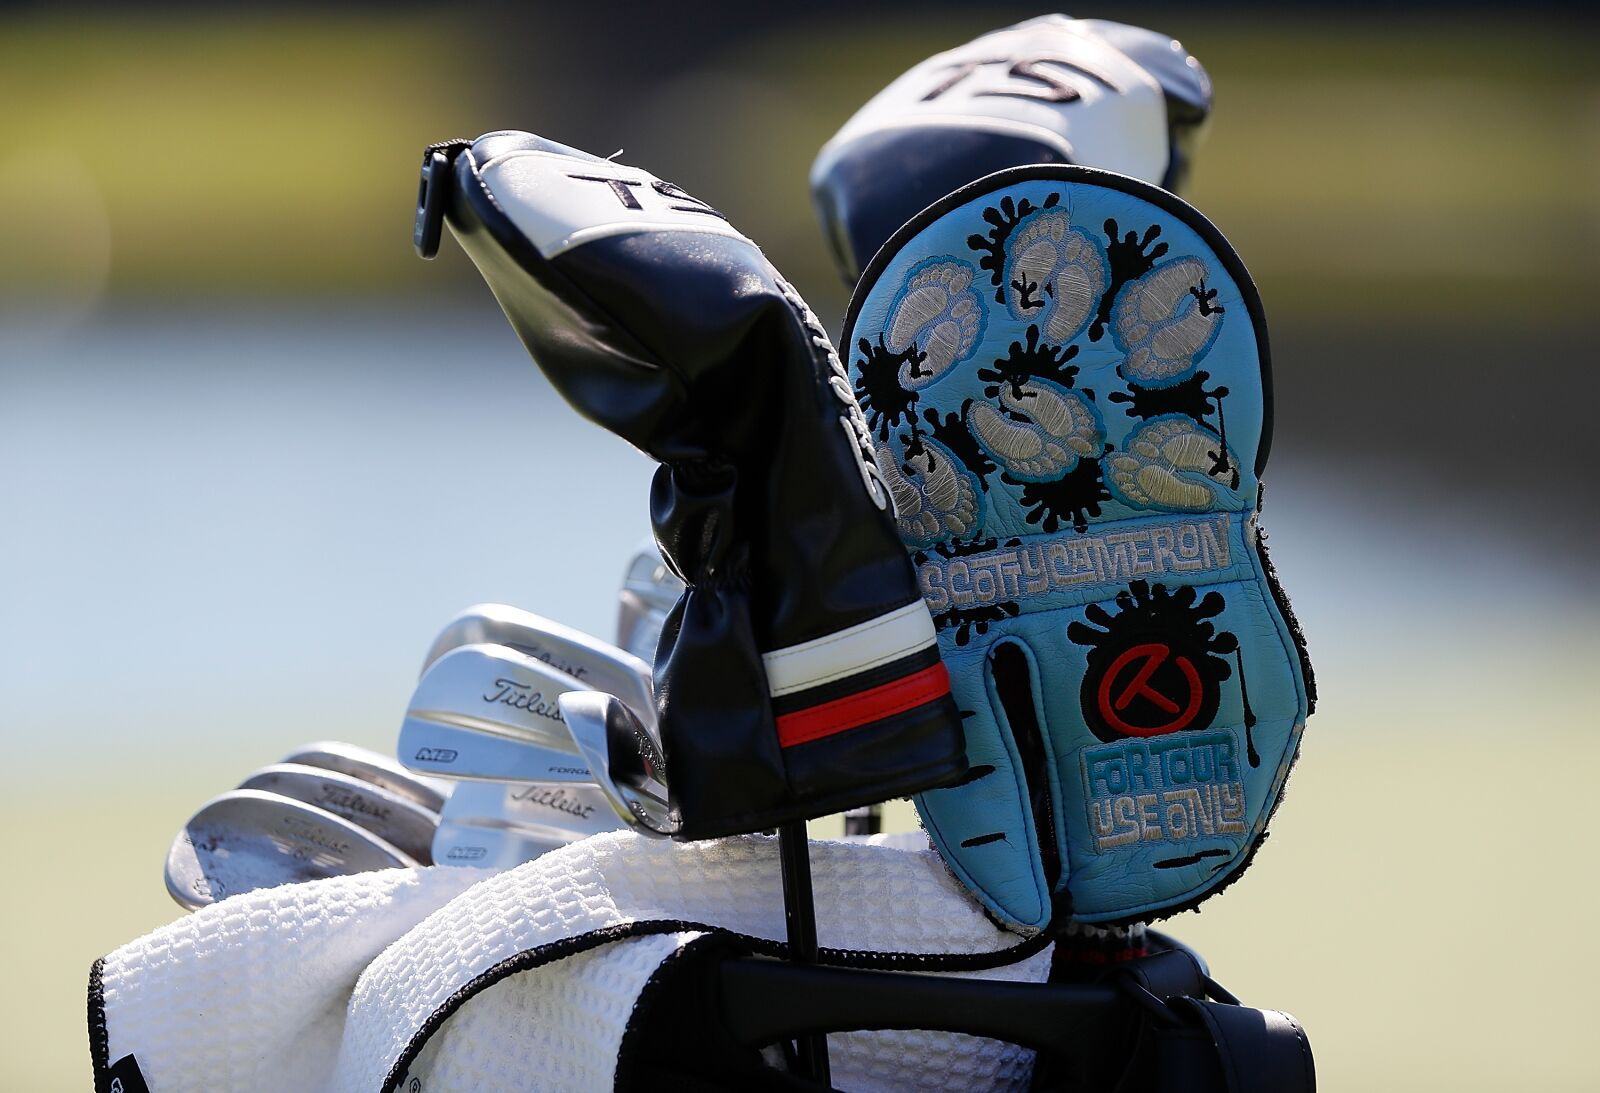 Golf Equipment: Let's take a look in a 25 handicapper's ideal bag set-up